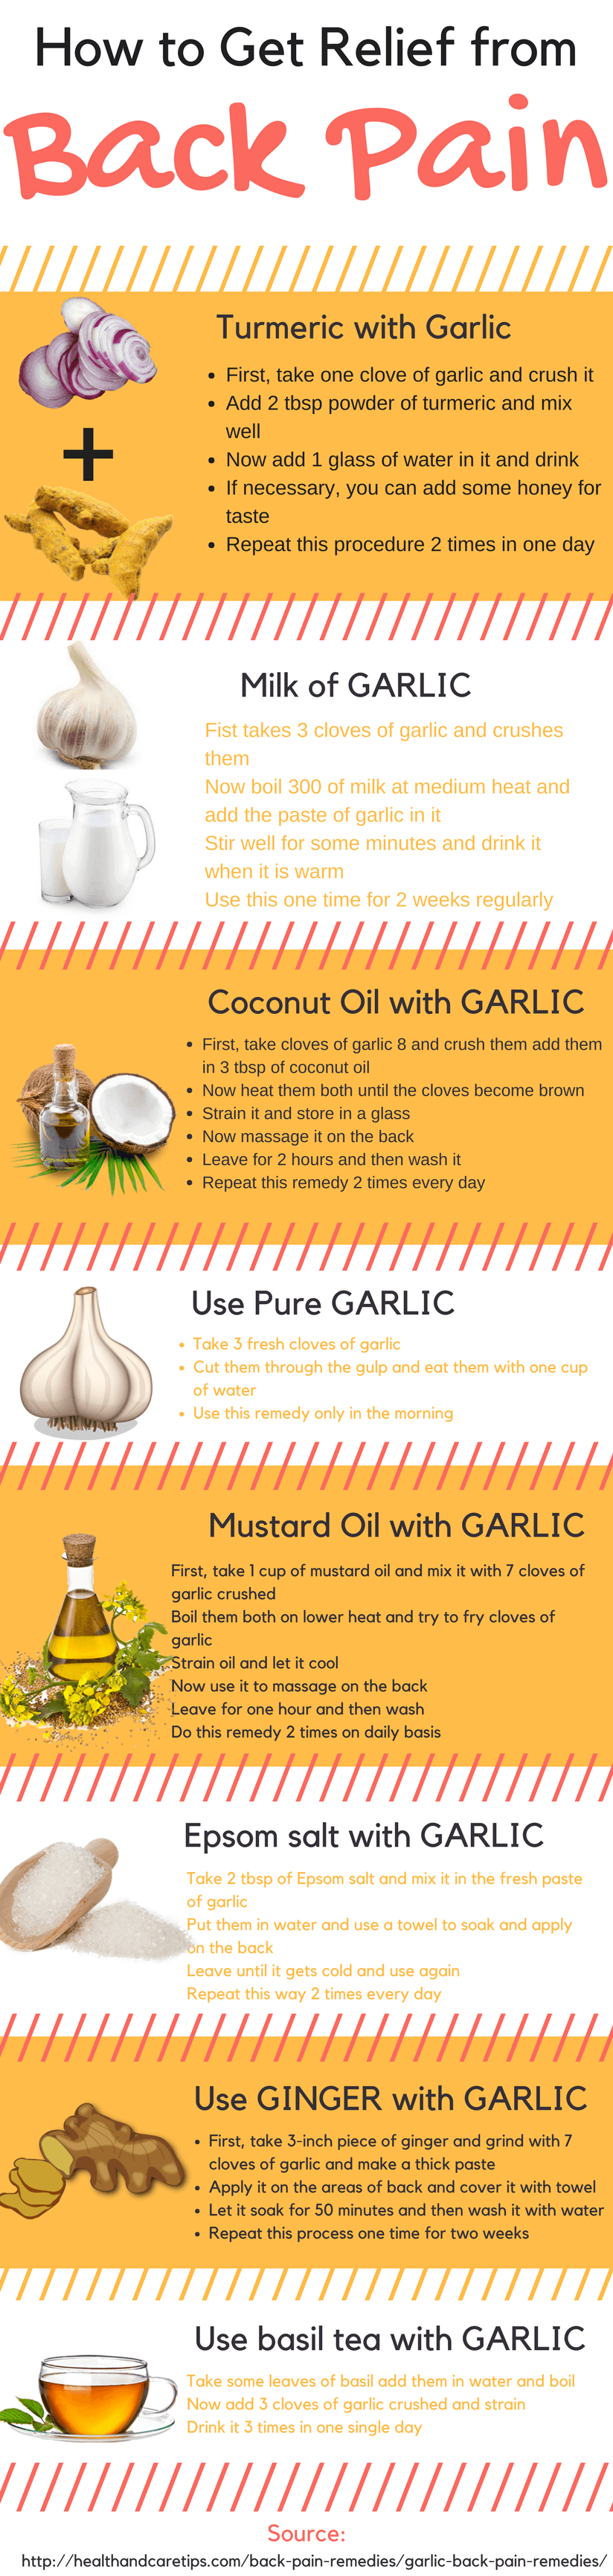 Discussion on this topic: How to Take Garlic for Back Pain, how-to-take-garlic-for-back-pain/